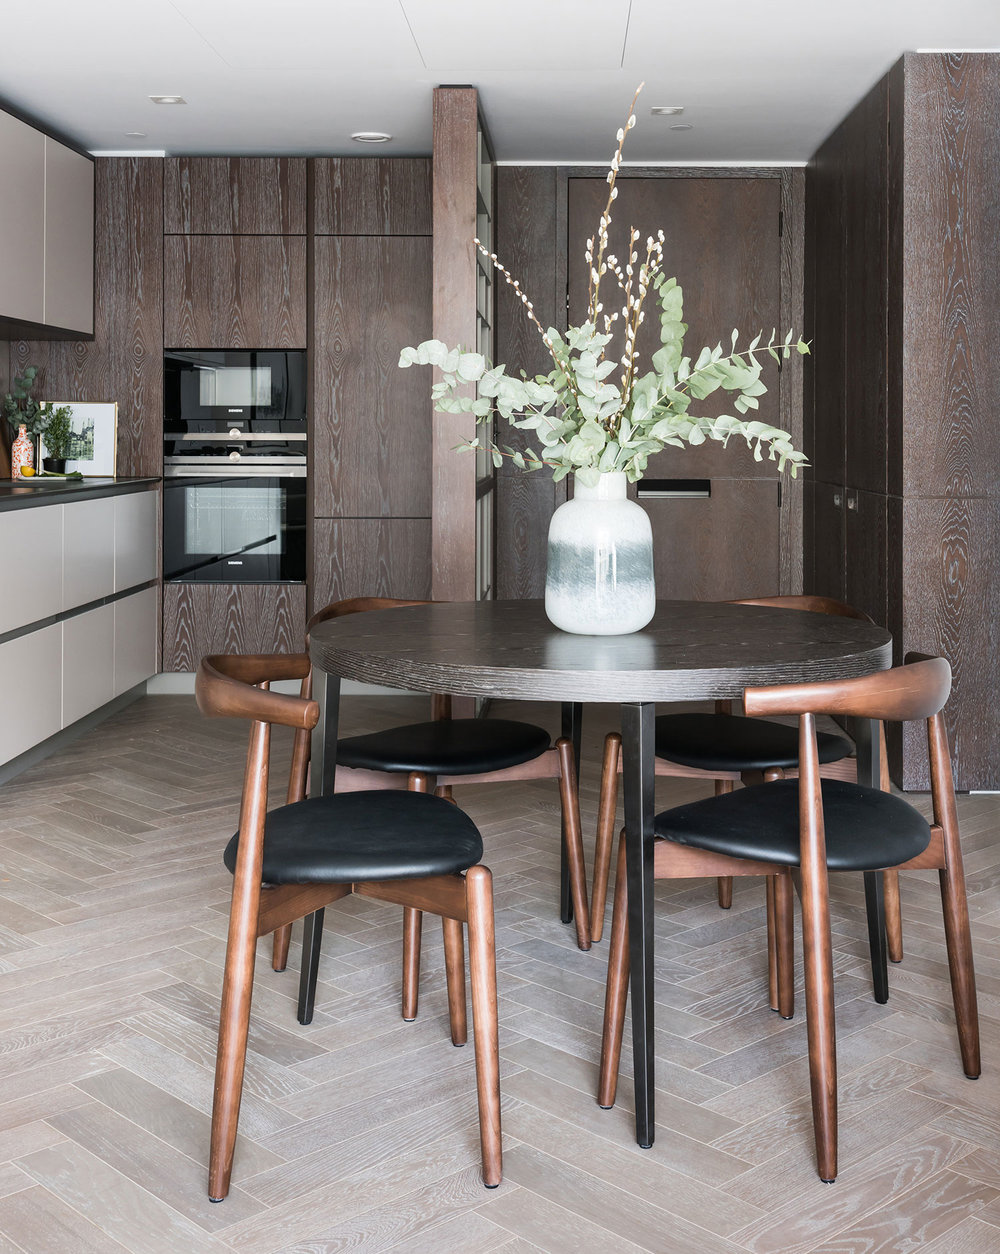 BoxNine7_Battersea_Power_Station_17_Kitchen_Dining_Room.jpg